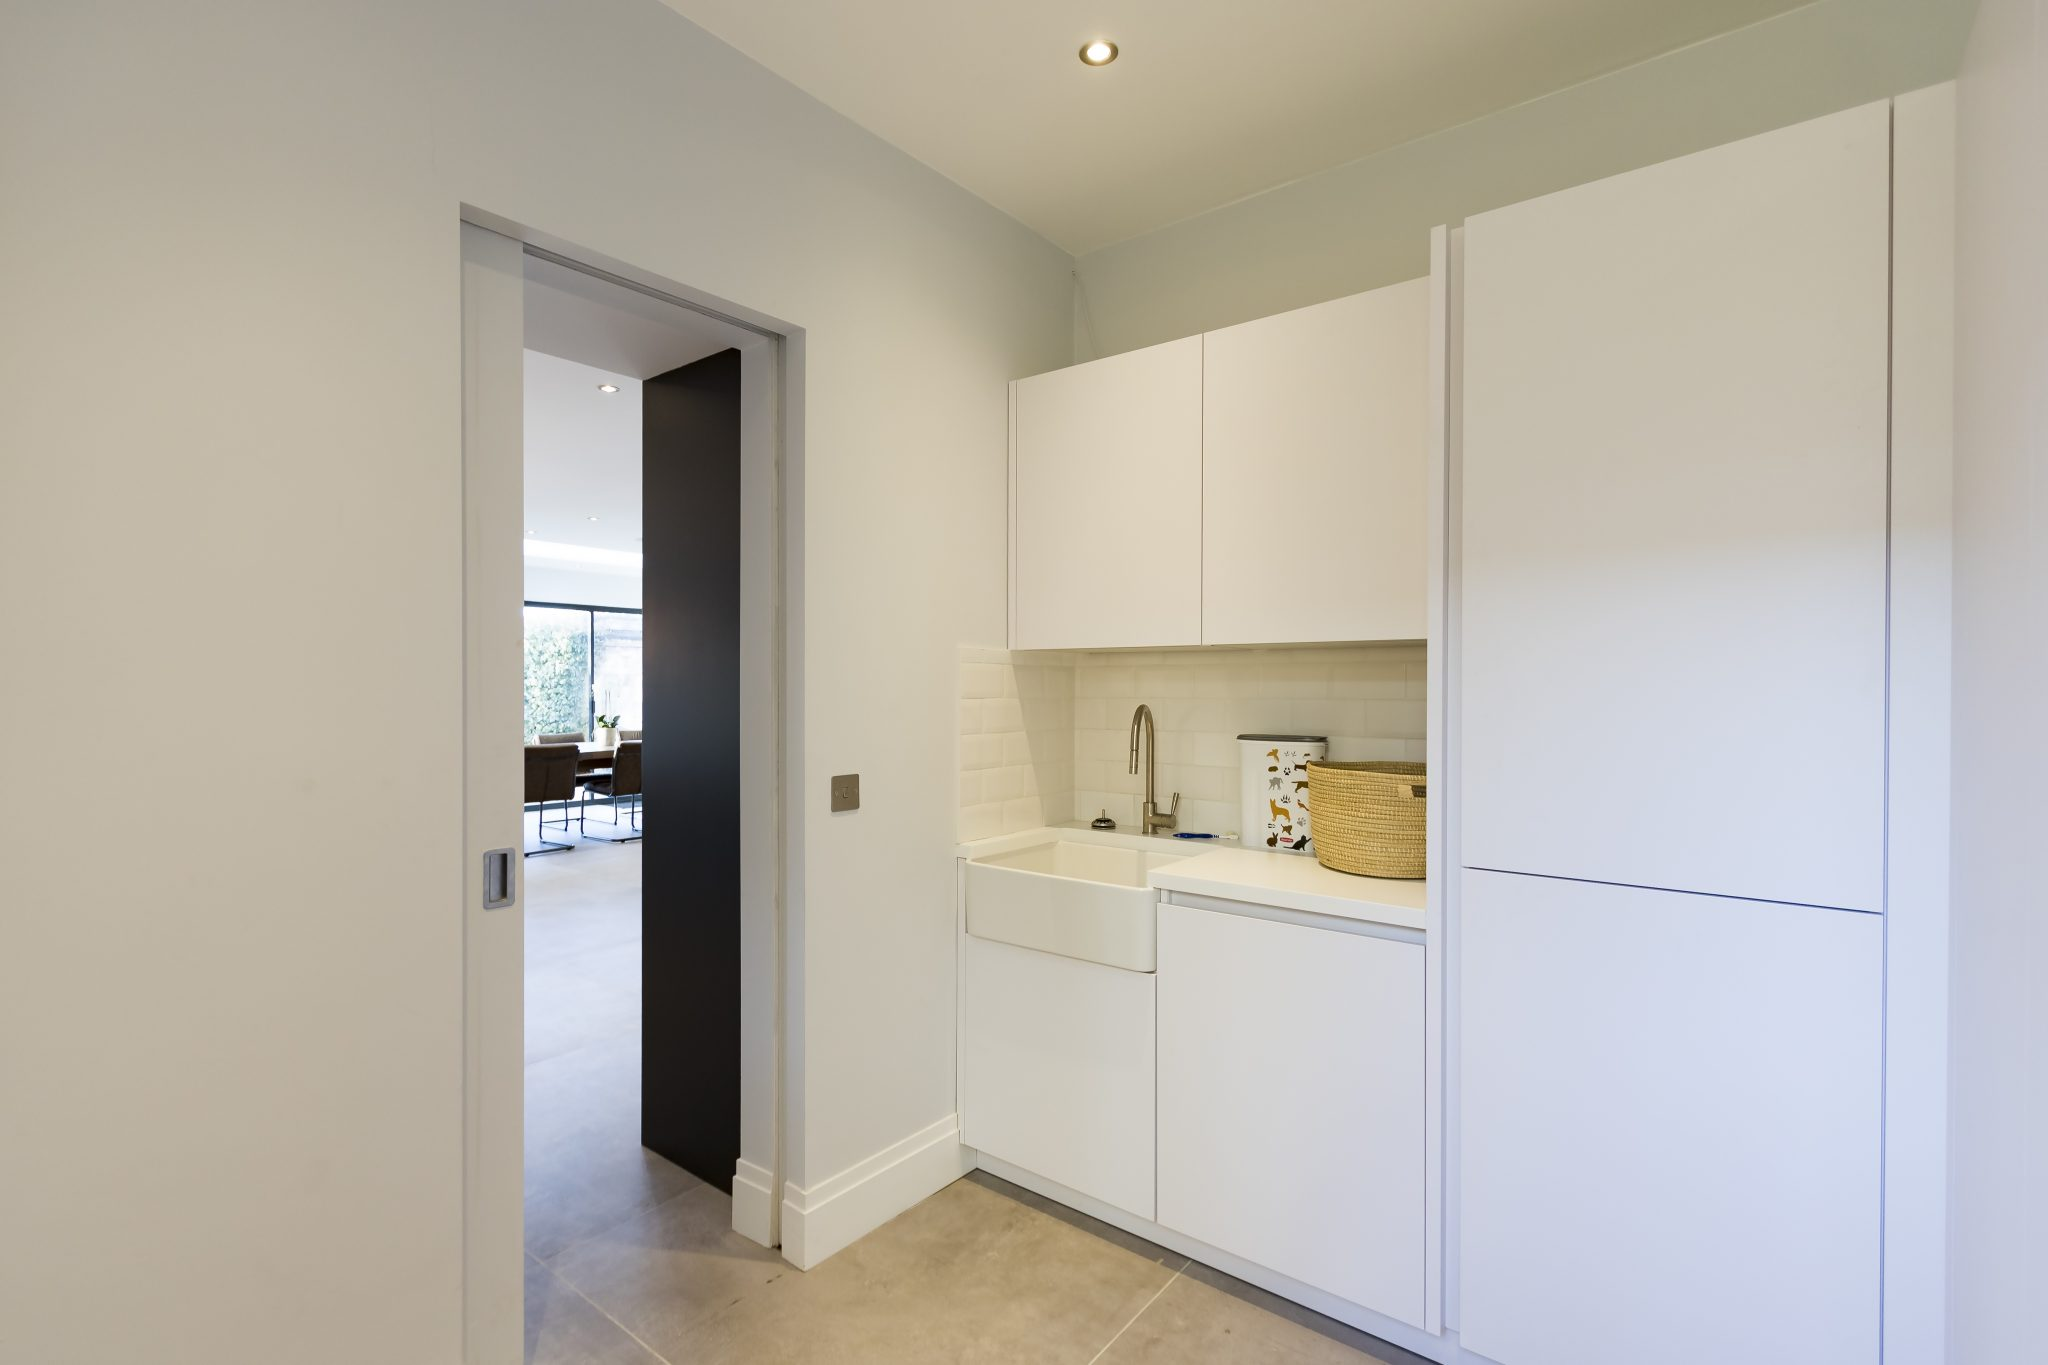 Modern Handleless Kitchen in Carbon Grey colour, from Leicht, in Kew